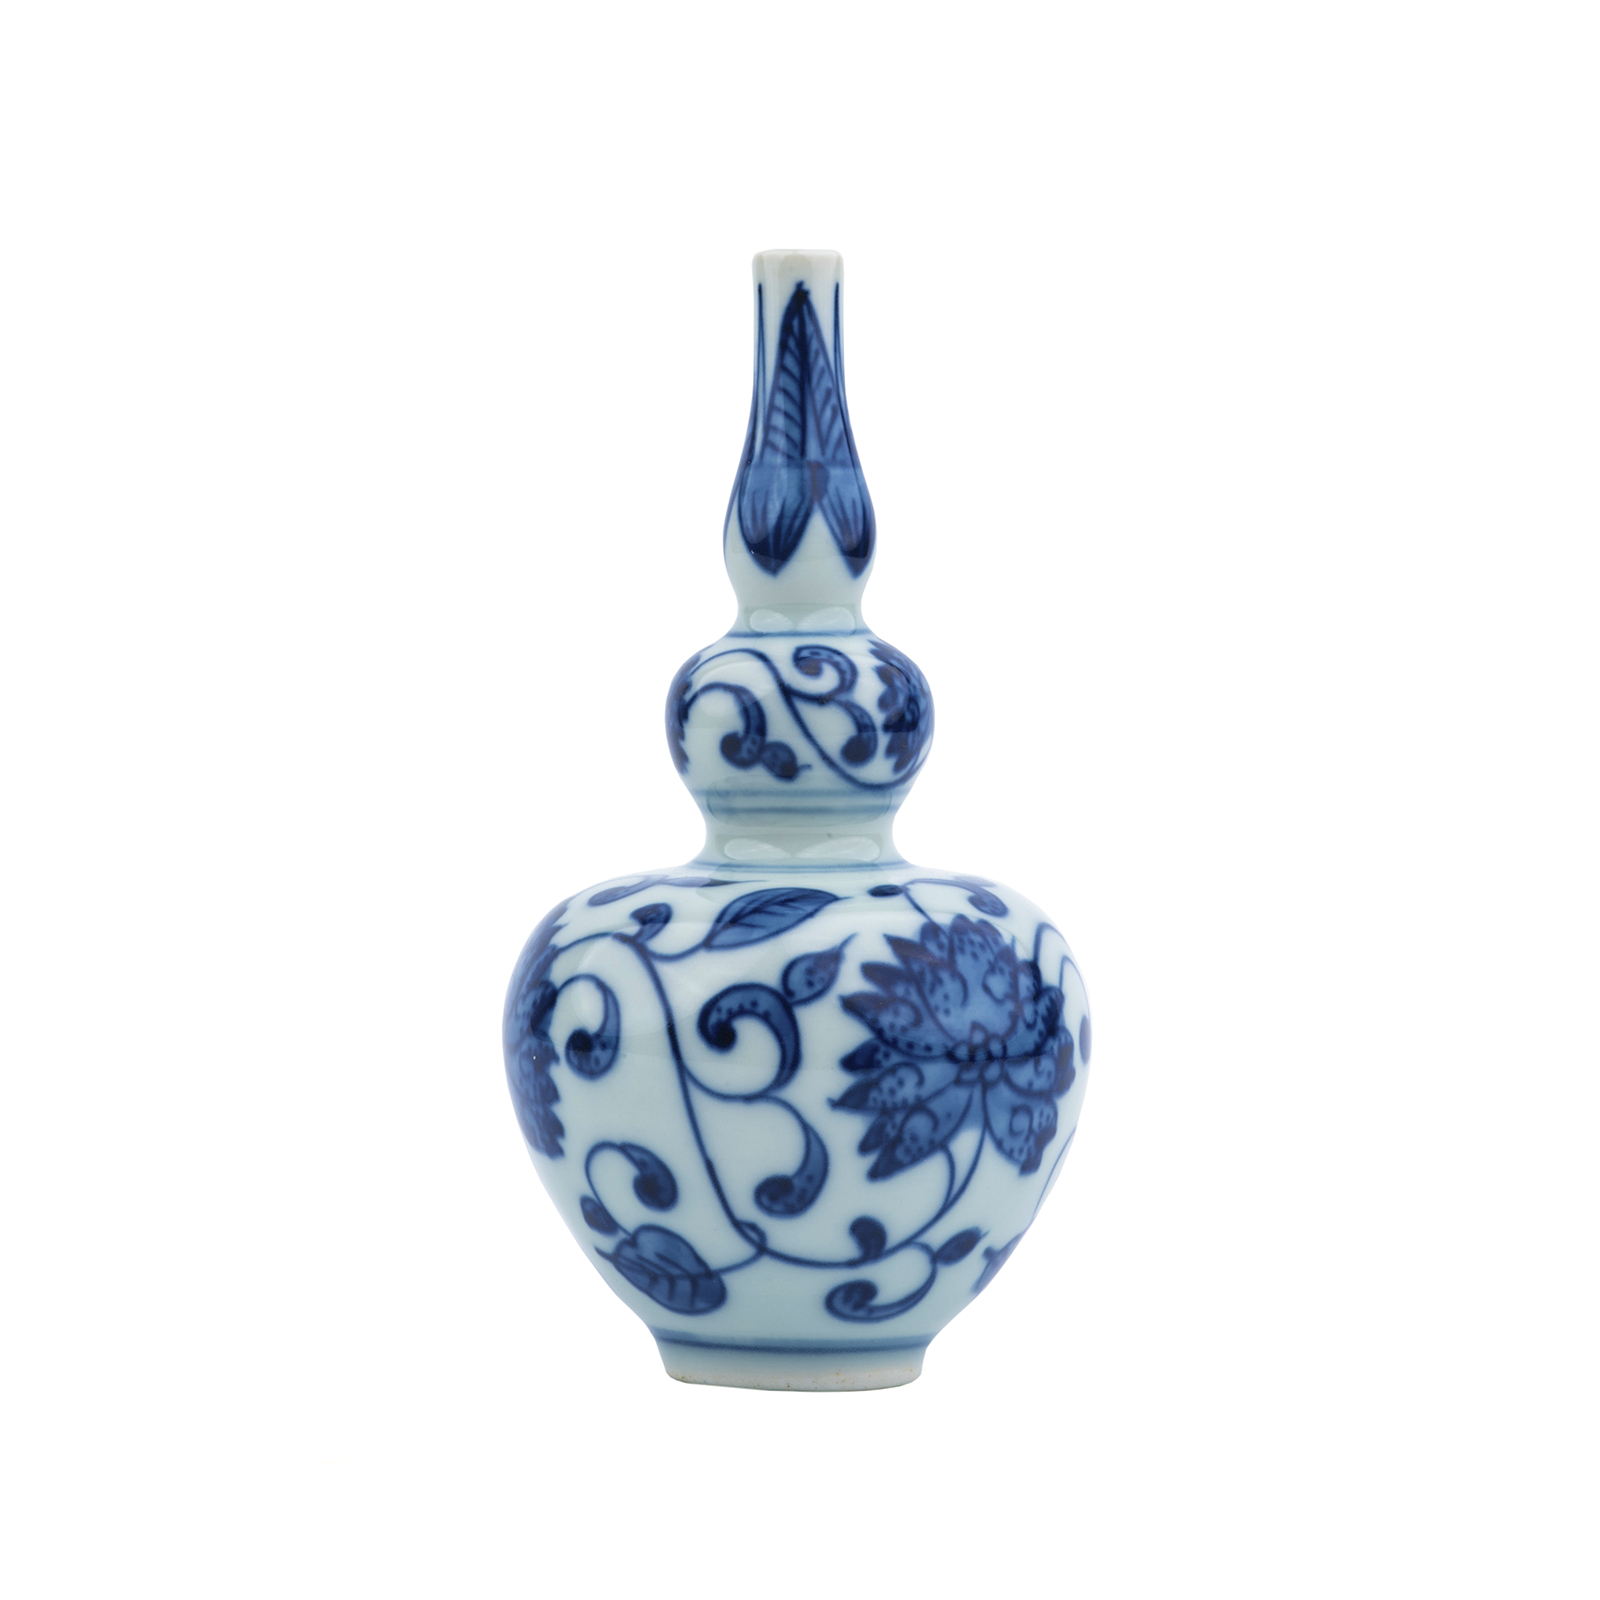 Blue And White Porcelain Chinese Bud Vase All The Decor throughout sizing 1600 X 1600